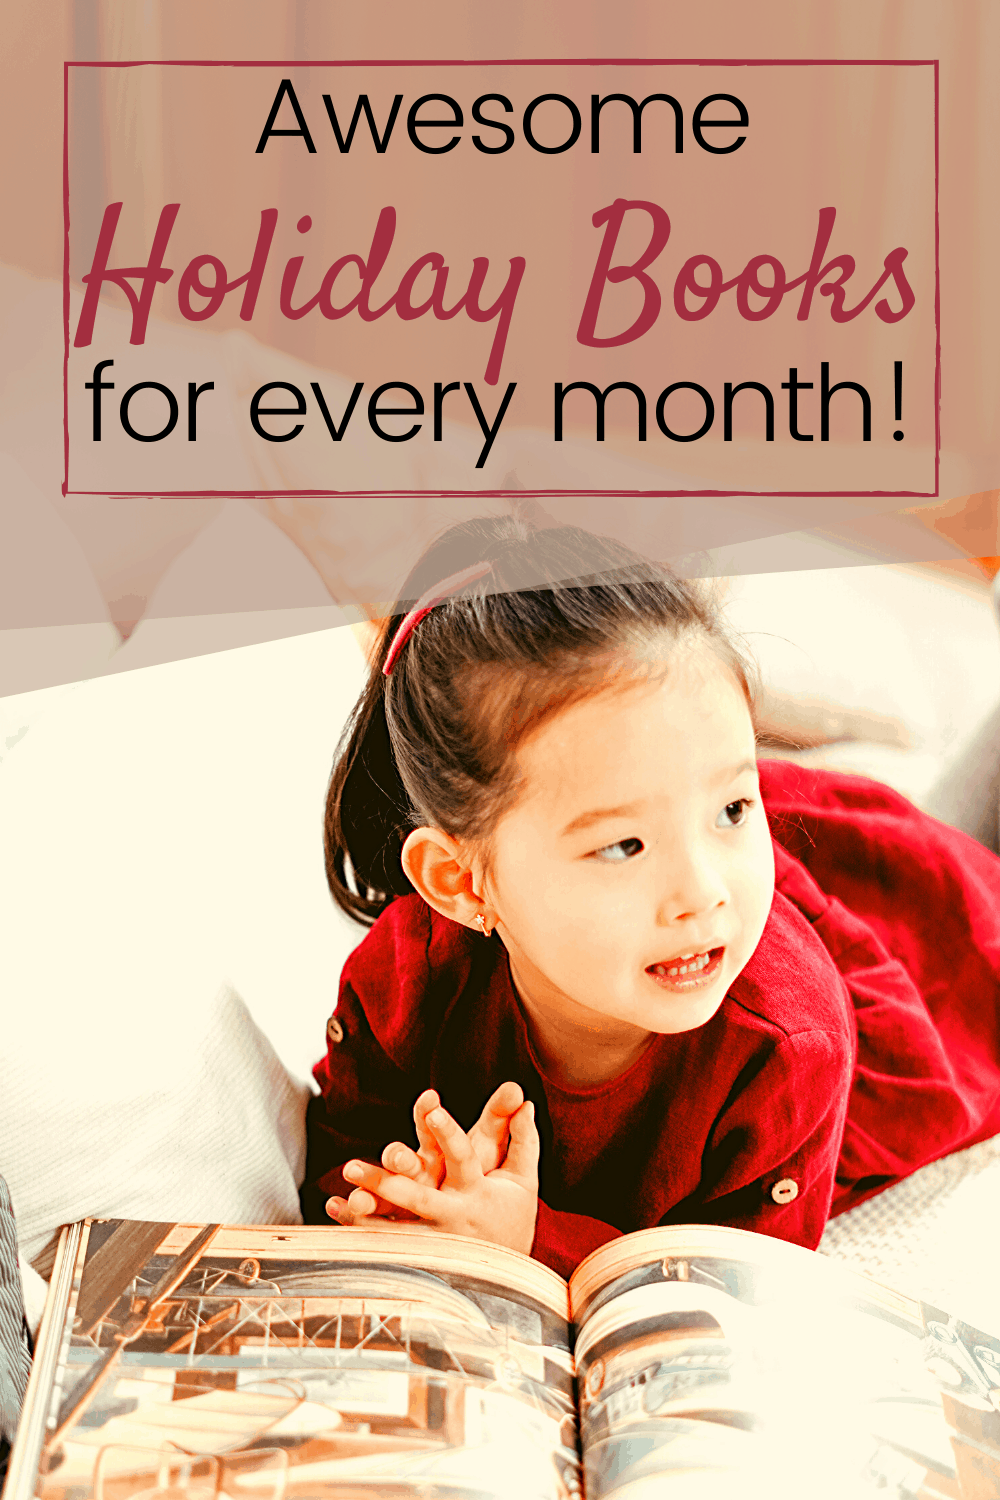 Come explore this amazing growing collection of the holiday books for kids. Discover books on a wide variety of topics covering animals, seasons, holidays, and much more!